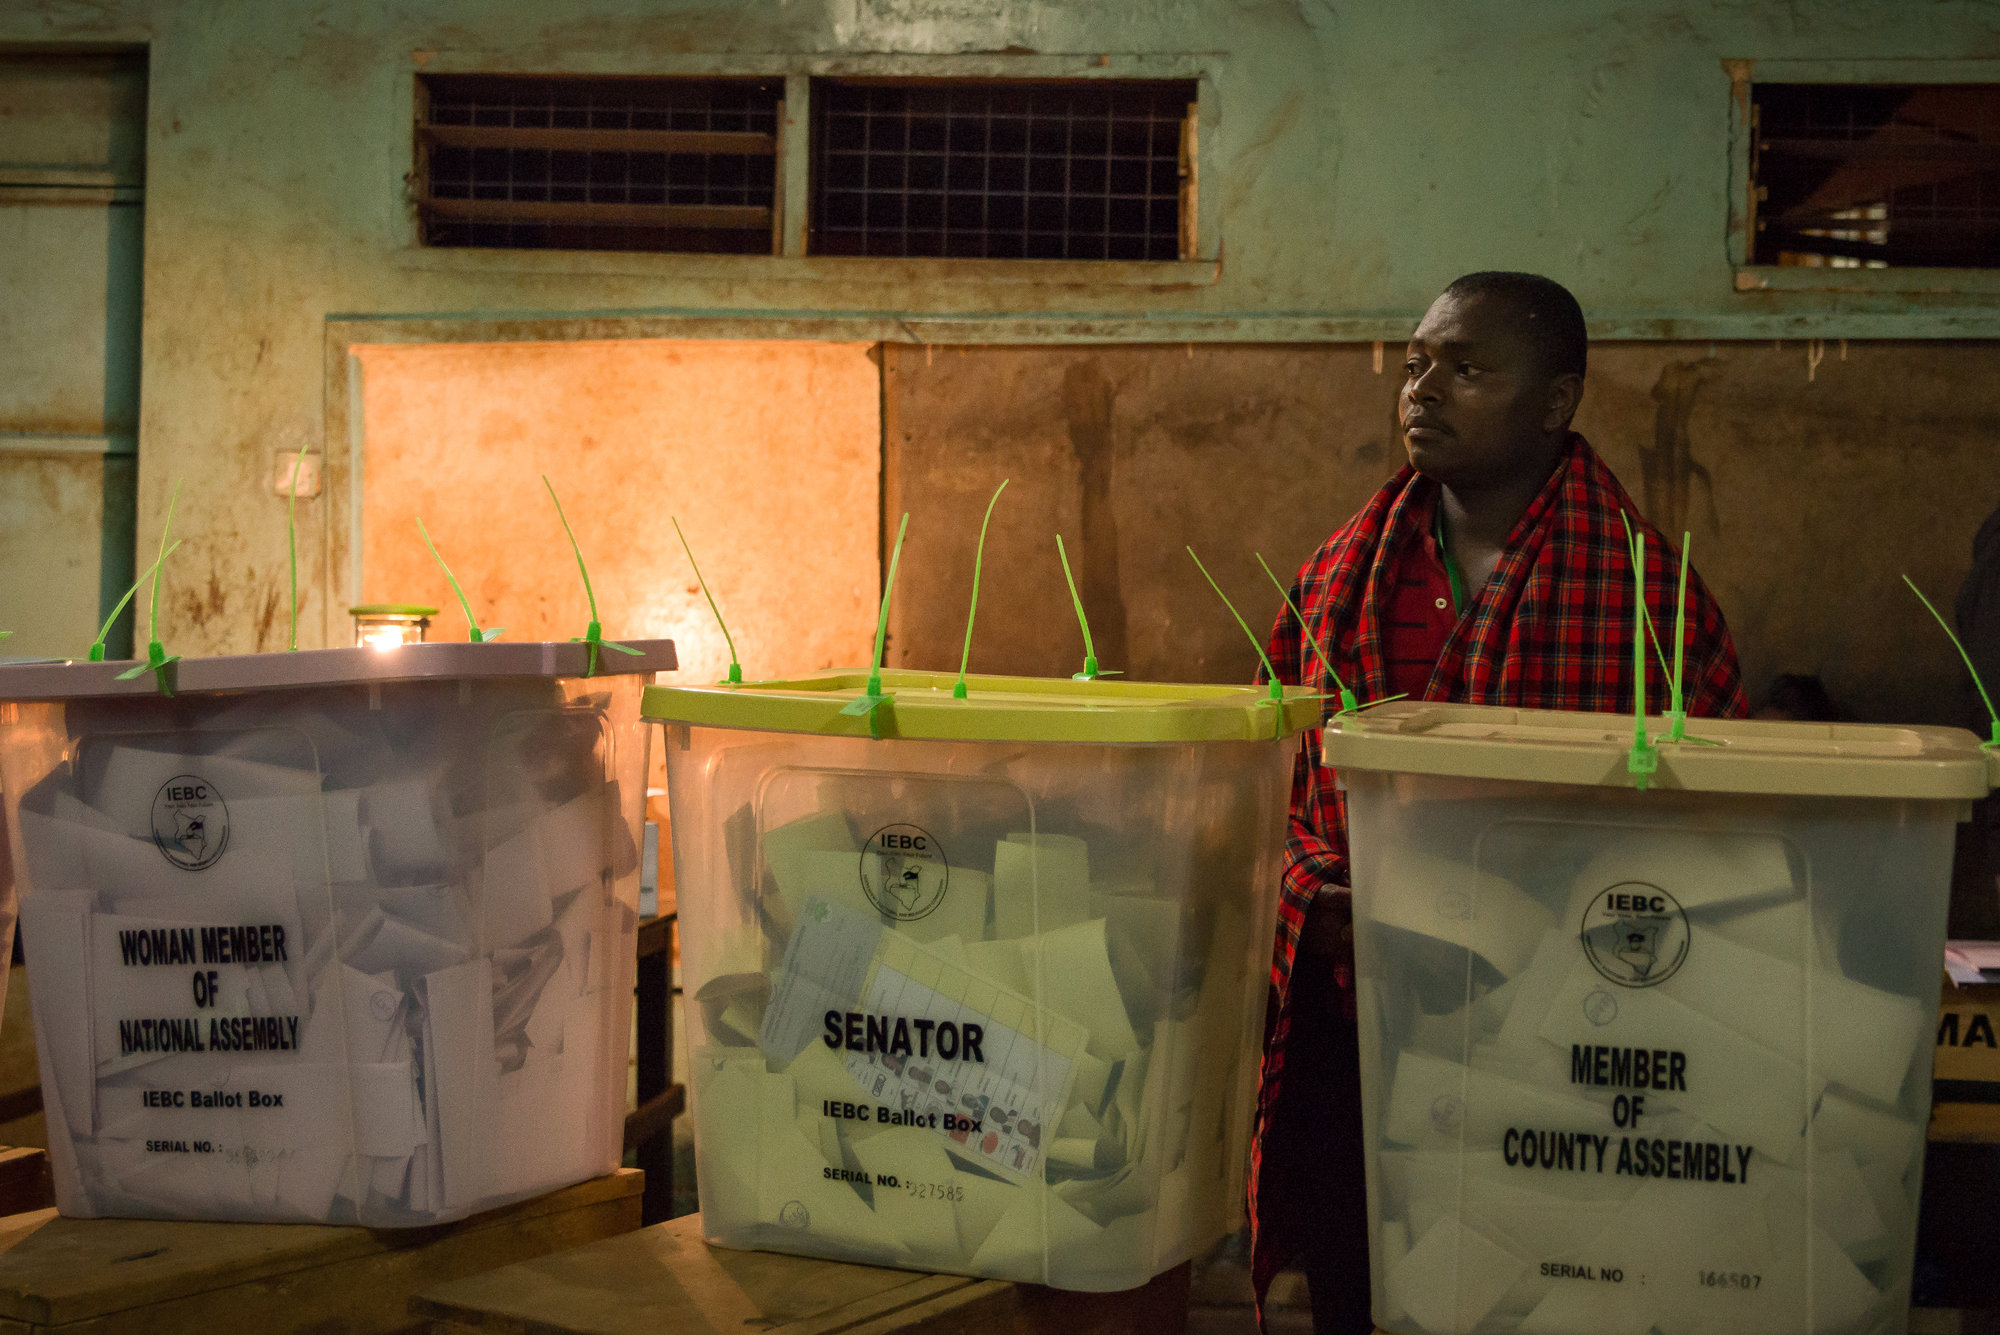 An election official wait for confirmation to begin counting votes for Kenya's next president in Nairobi, Kenya.